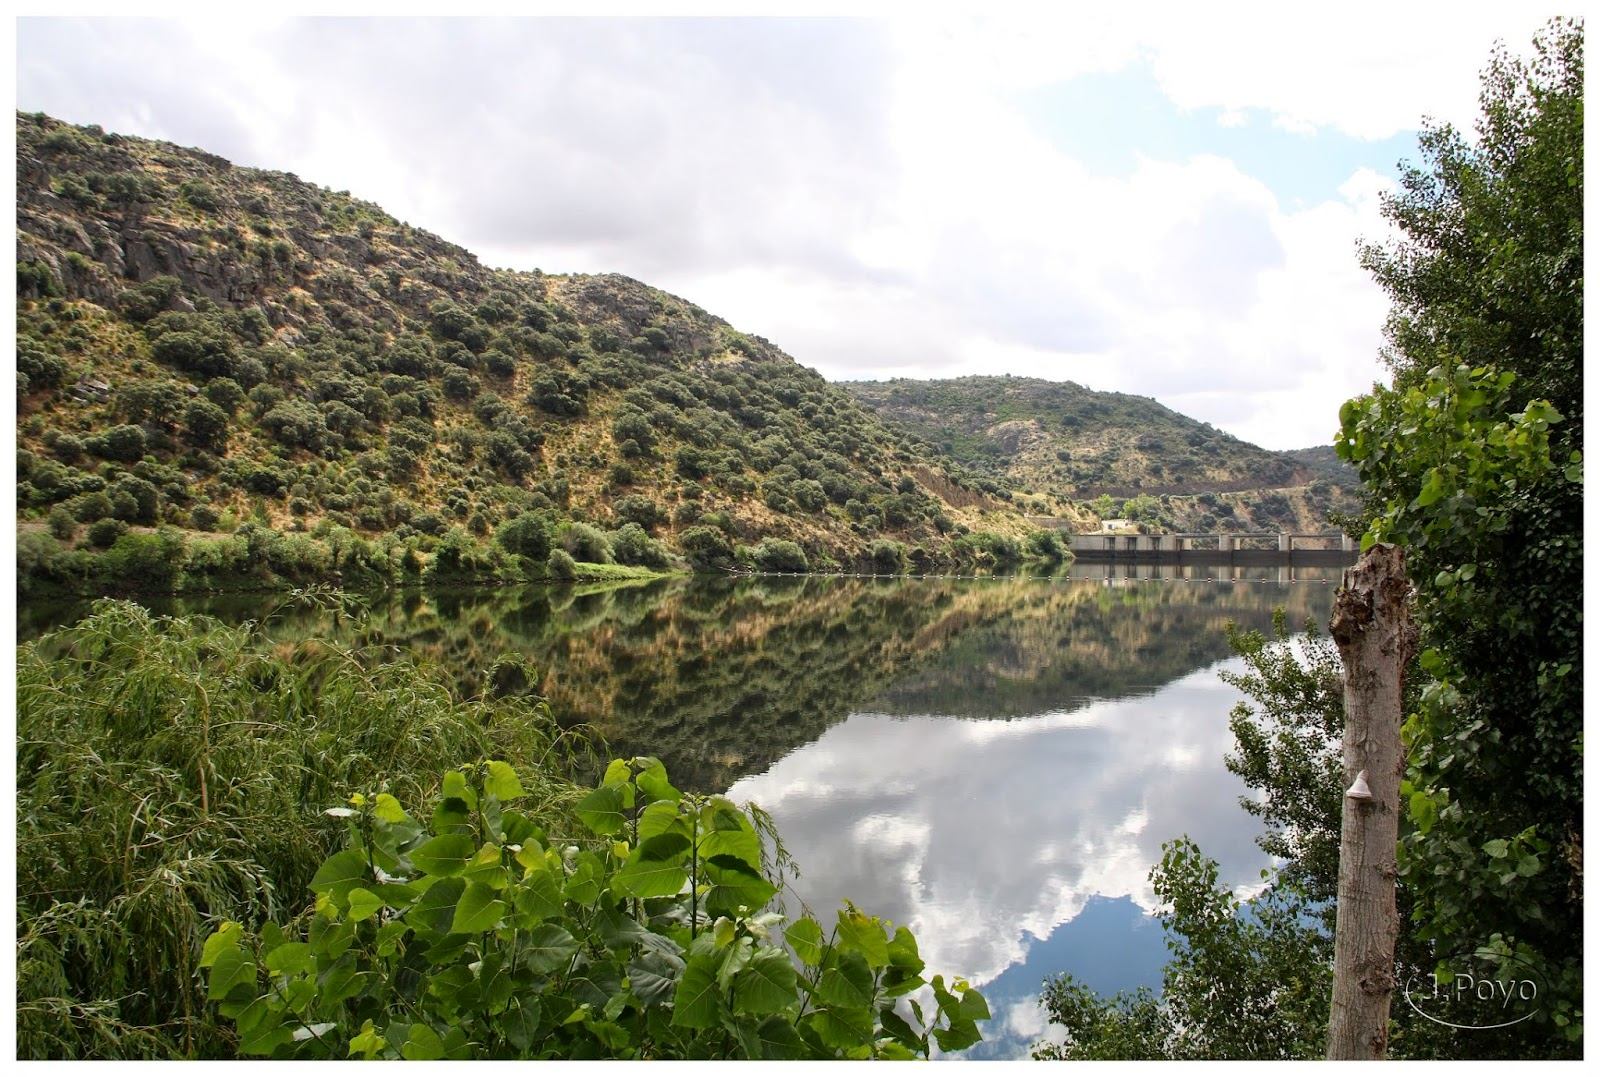 Río Duero, Miranda do Douro, estación ambiental